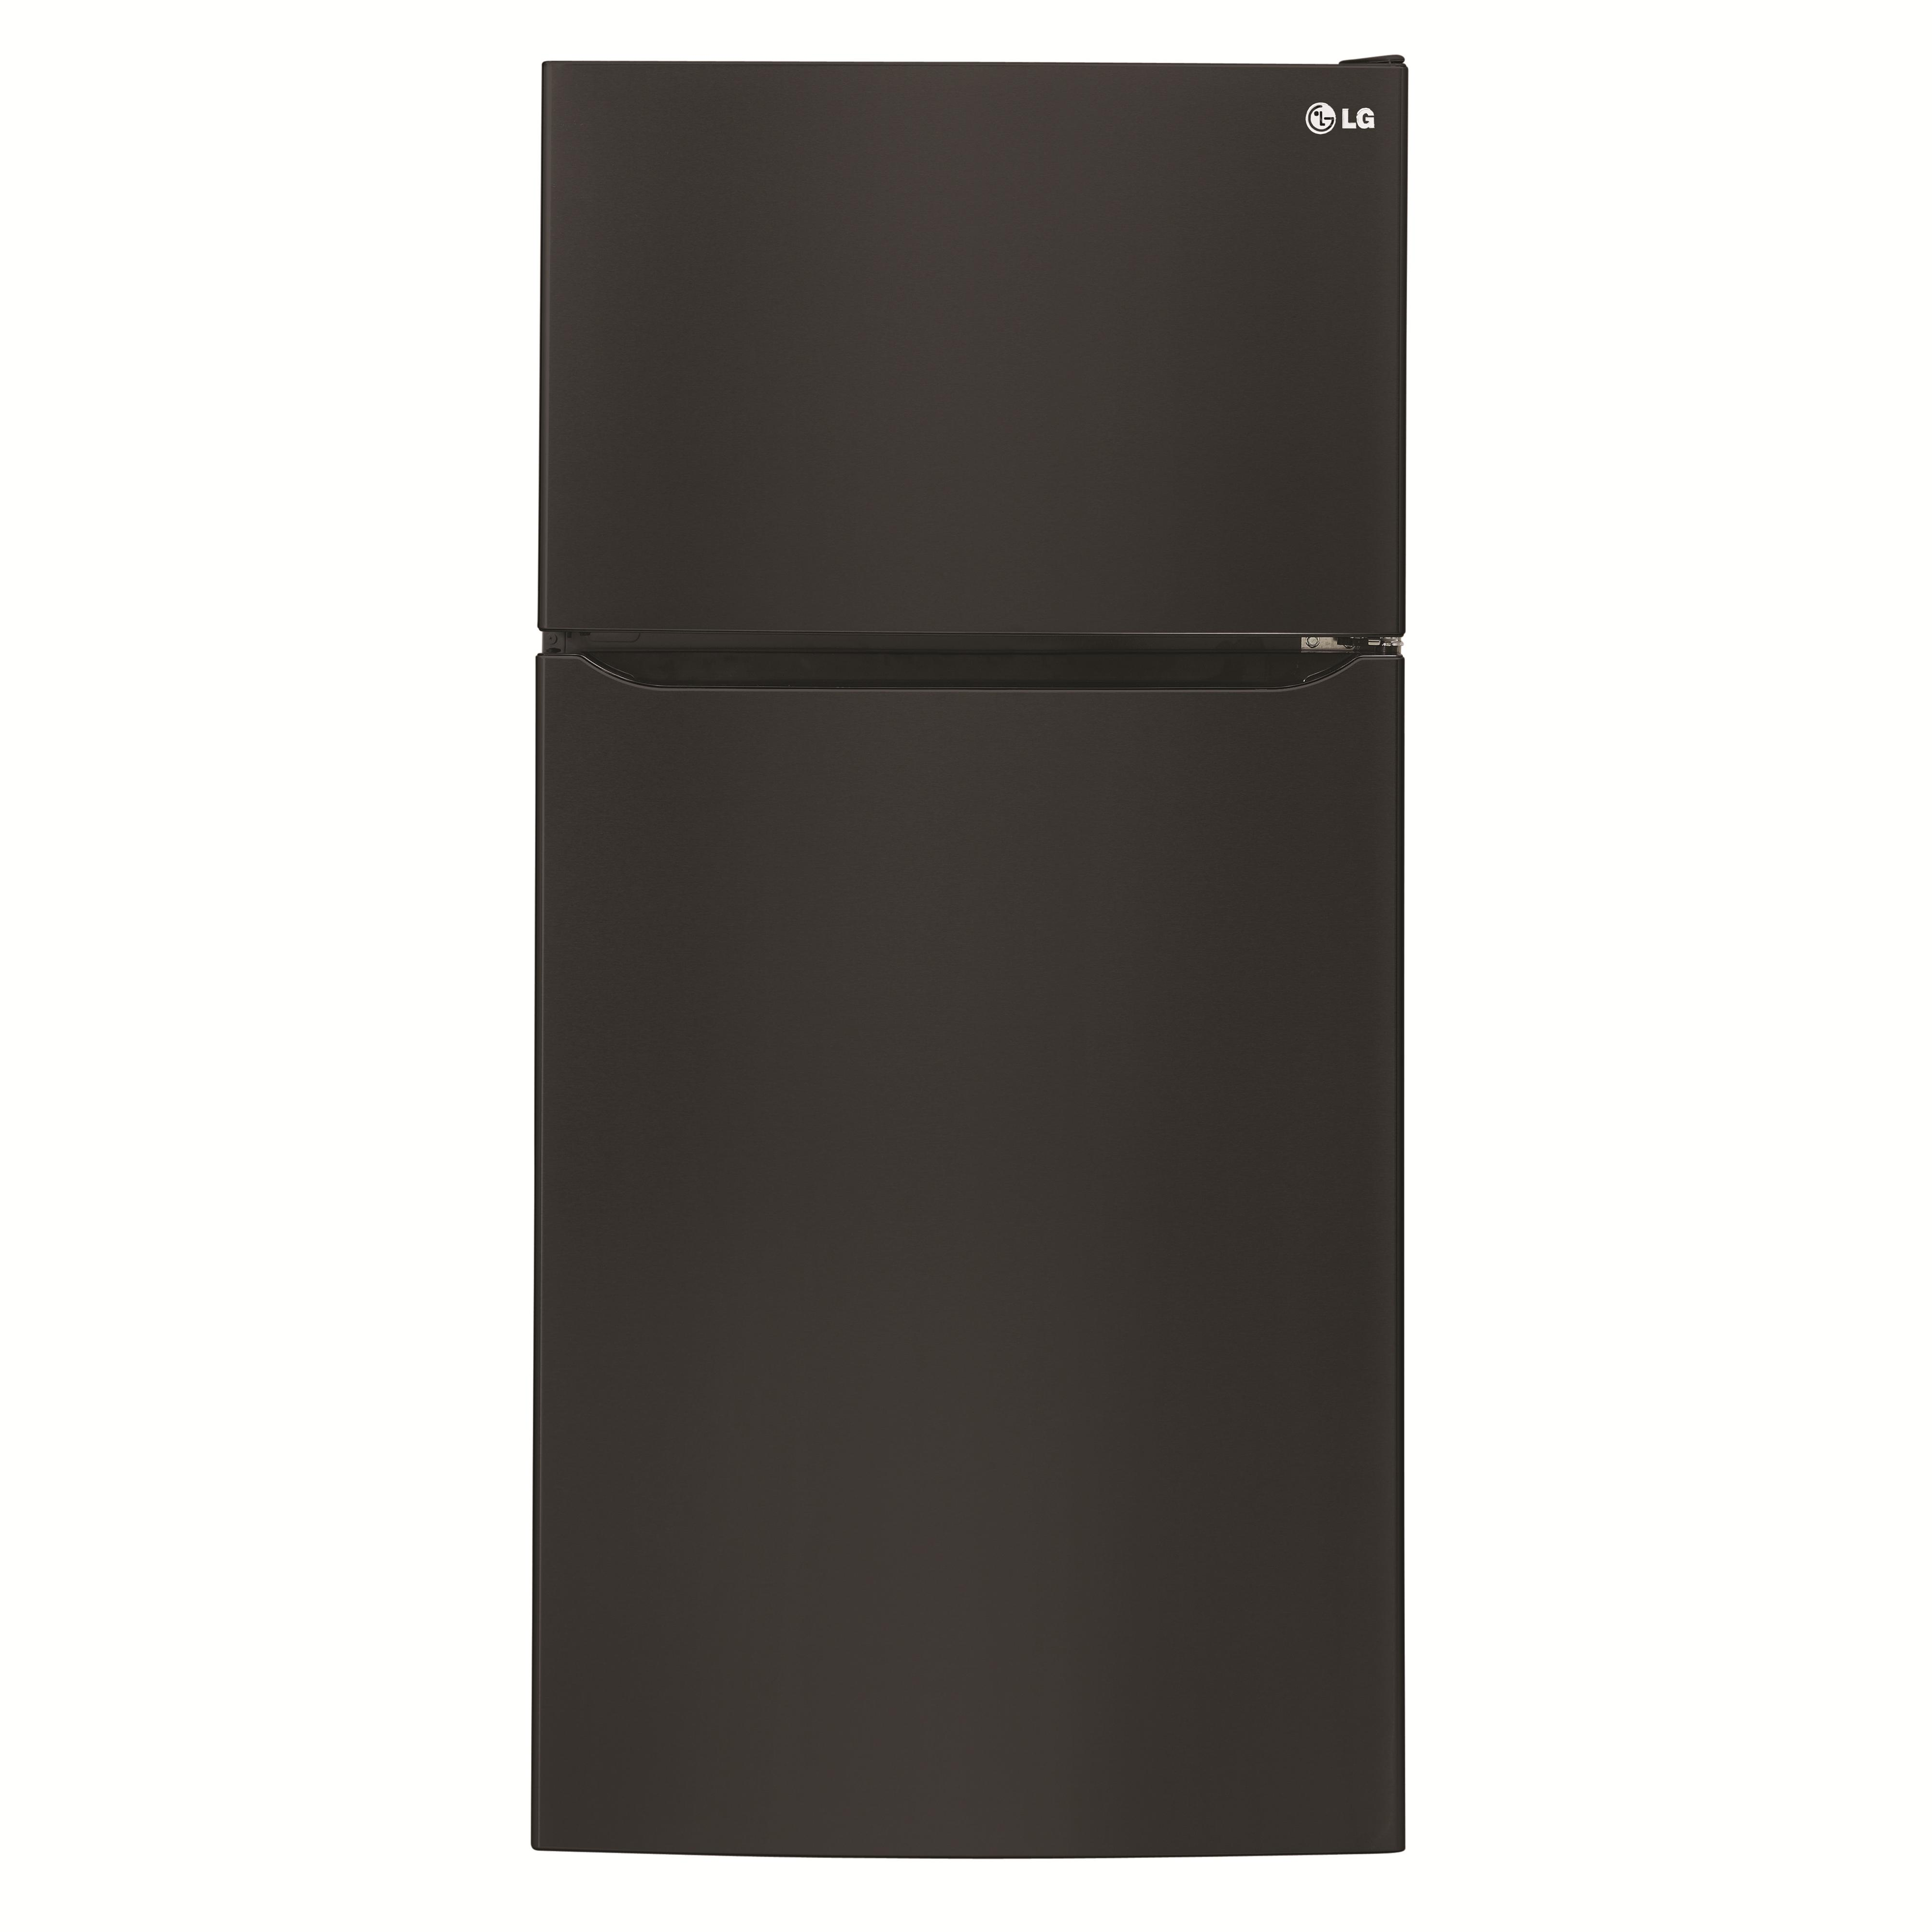 LG Appliances Top-Freezer Refrigerator 20 cu. ft. Wide Top Freezer Refrigerator - Item Number: LTCS20220B